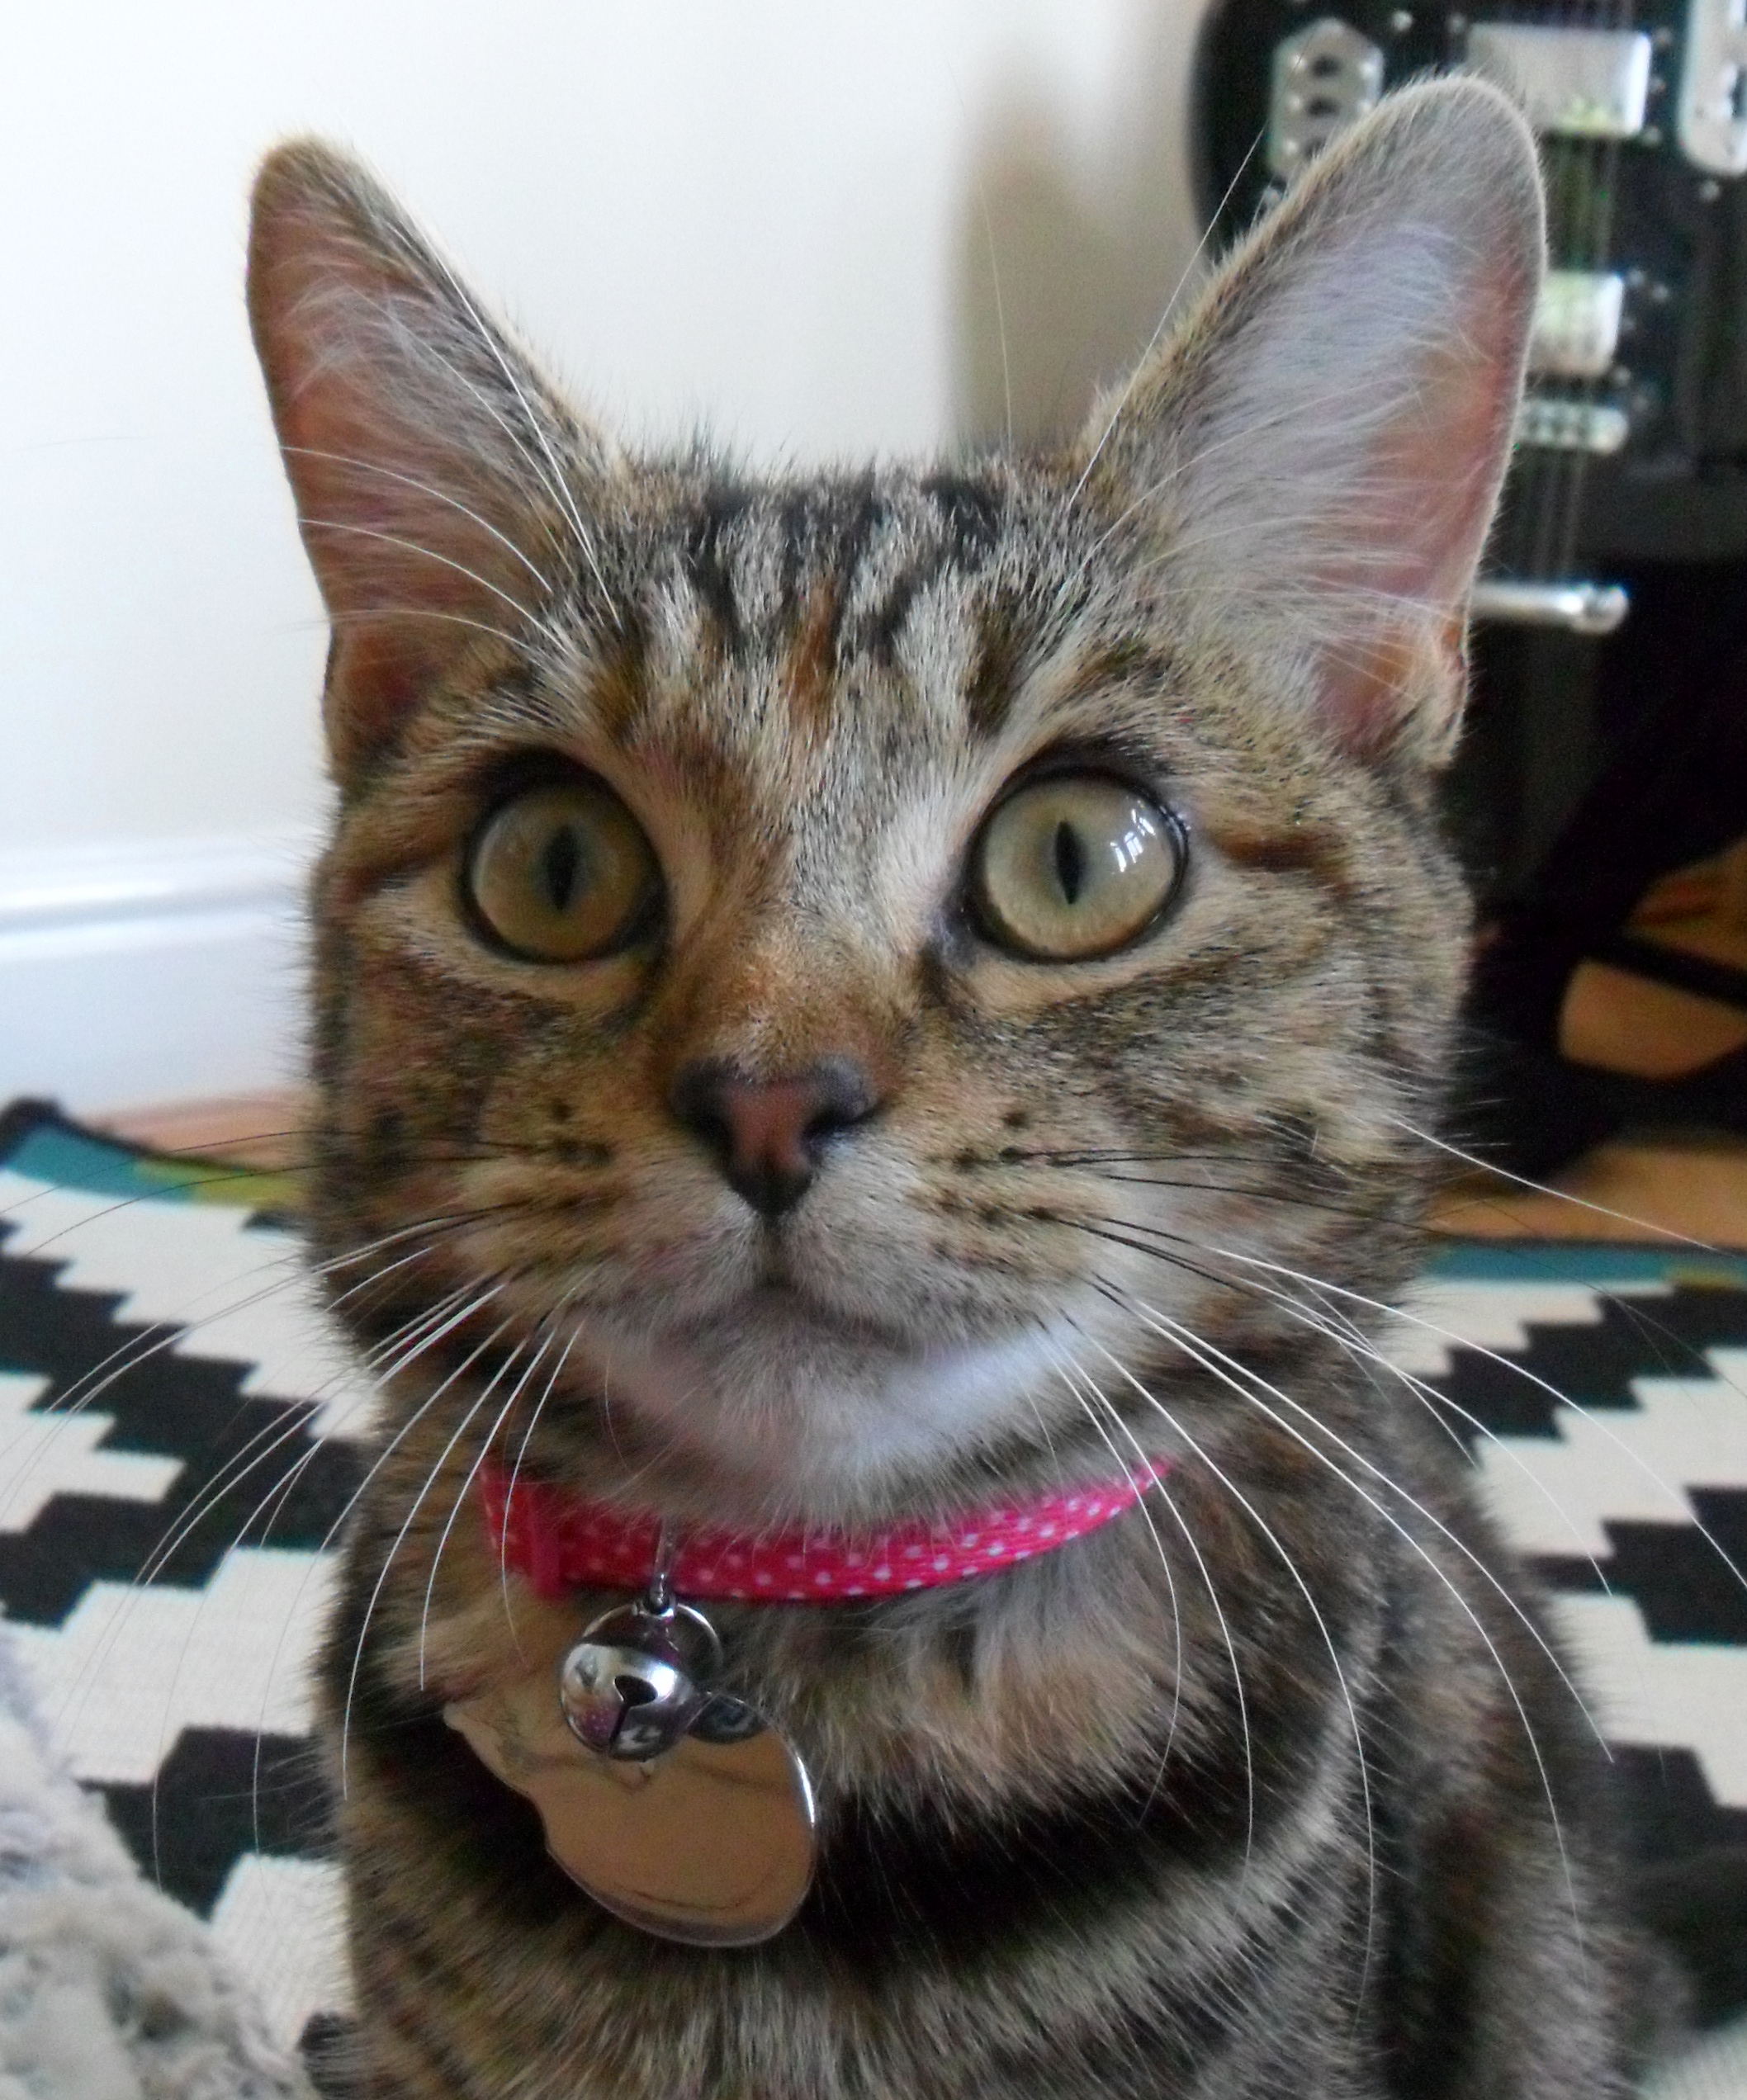 Photograpf of tabby cat in a pink collar